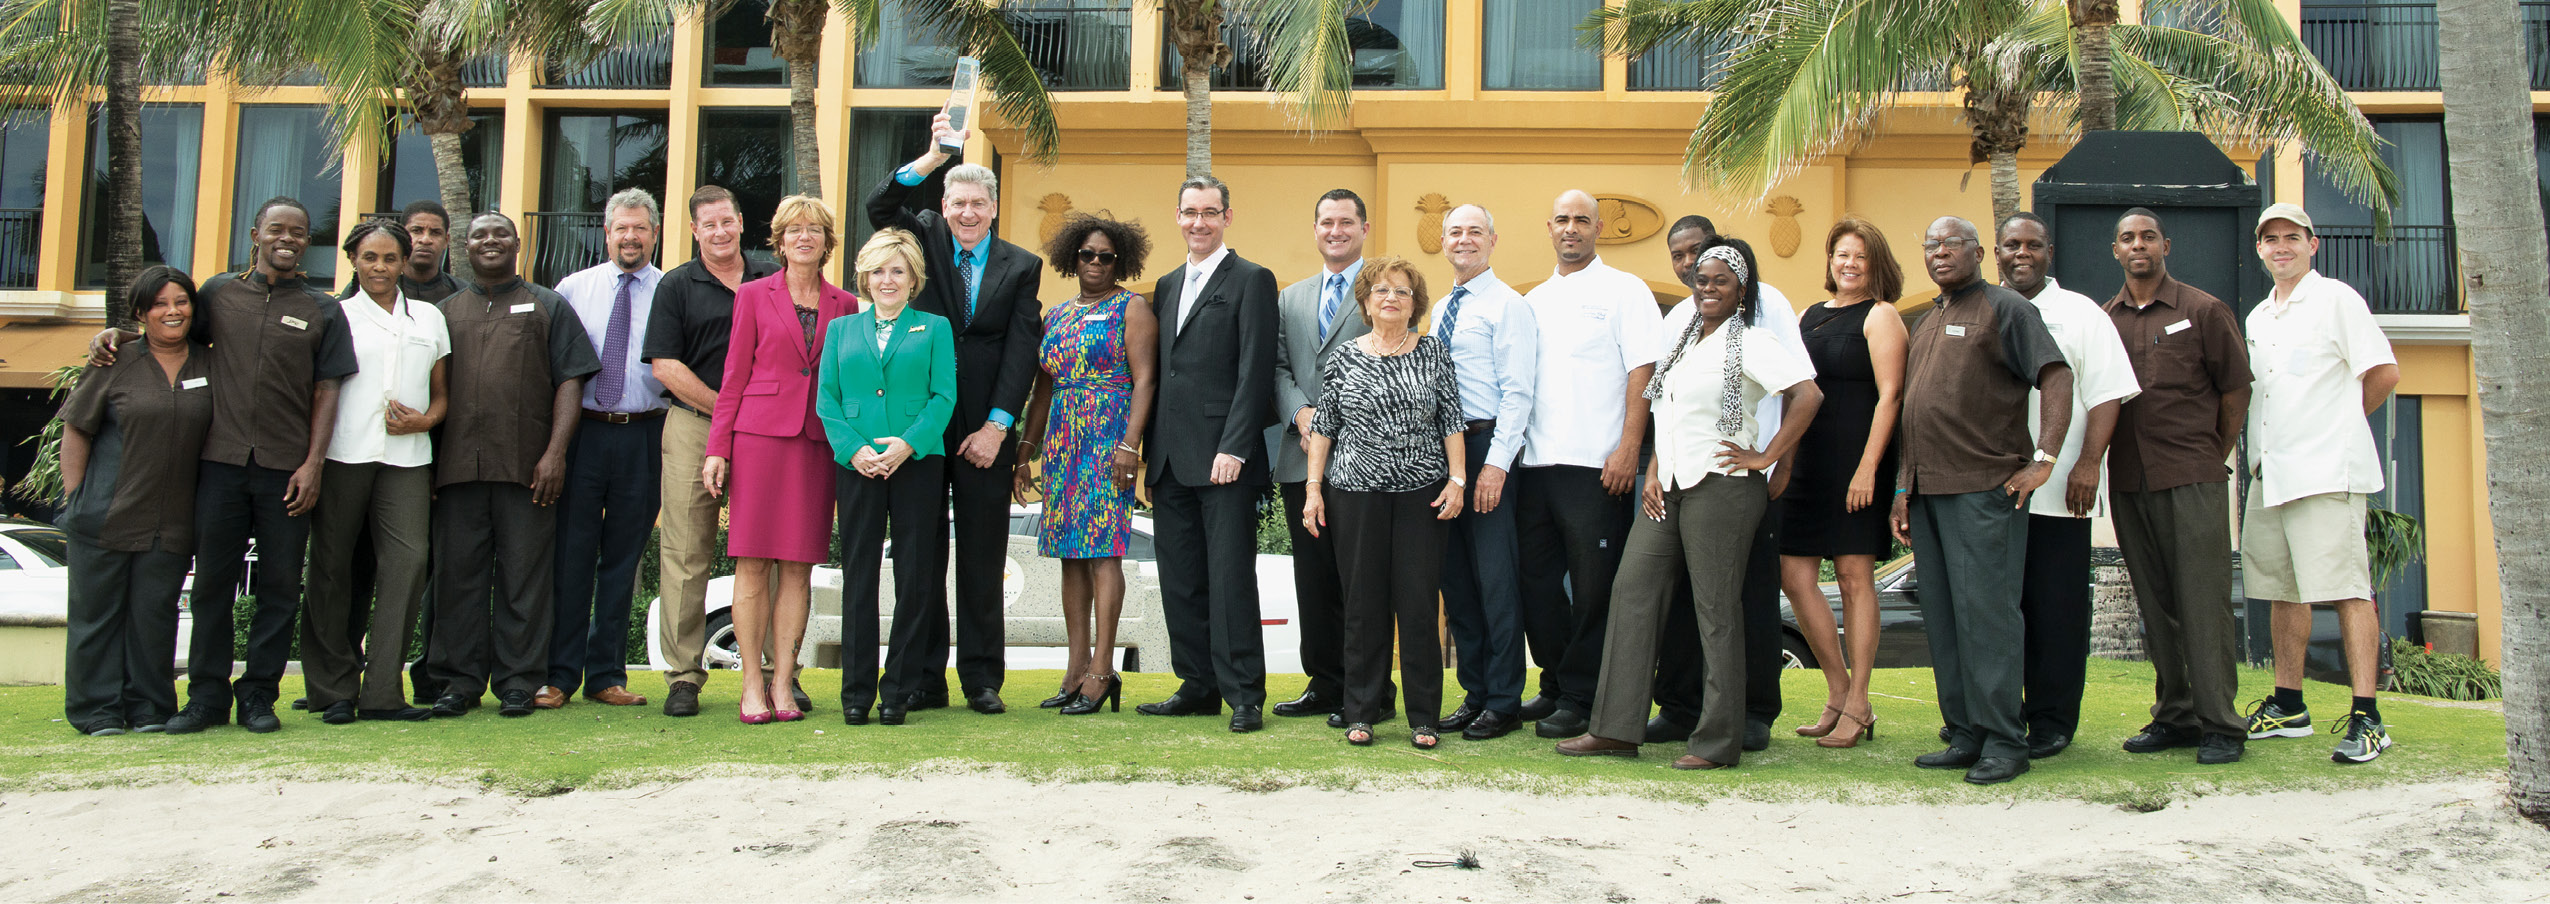 The staff at the Wyndham